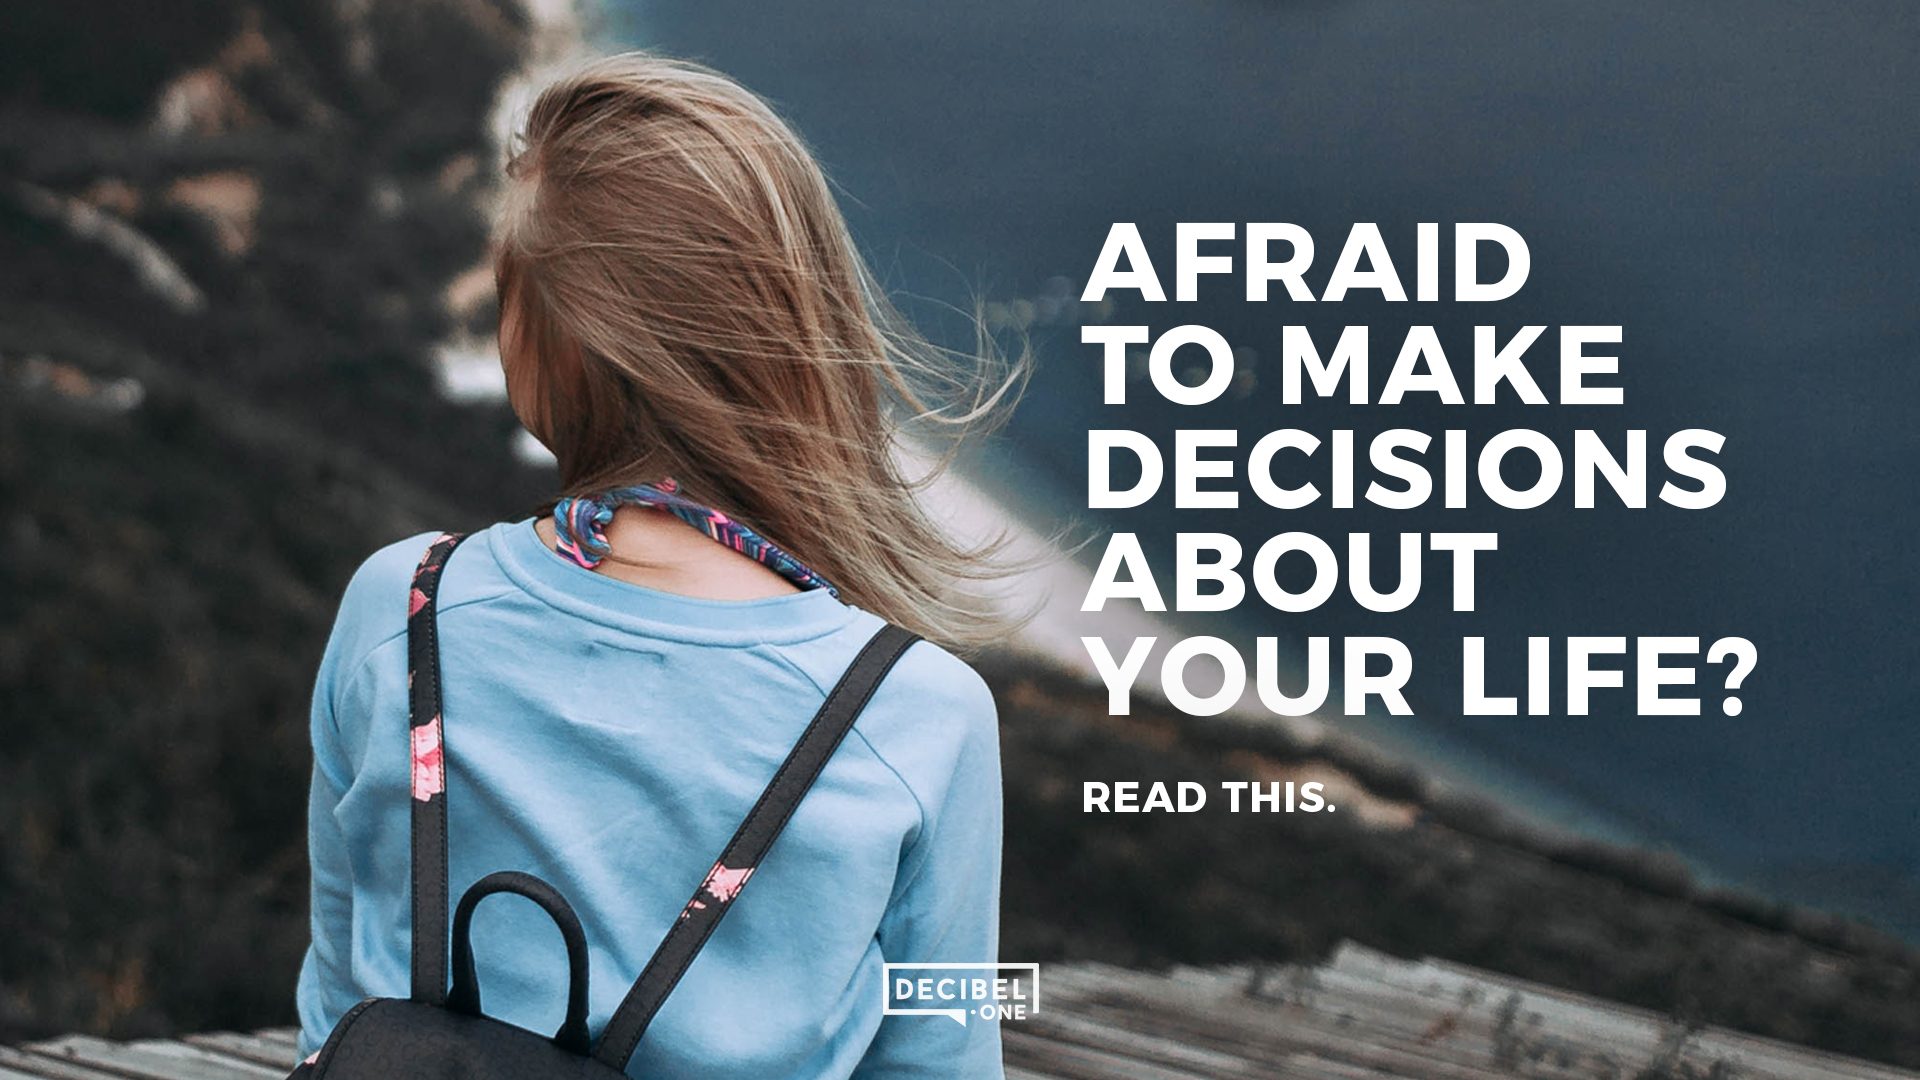 Afraid to make decisions about your life? Read this.